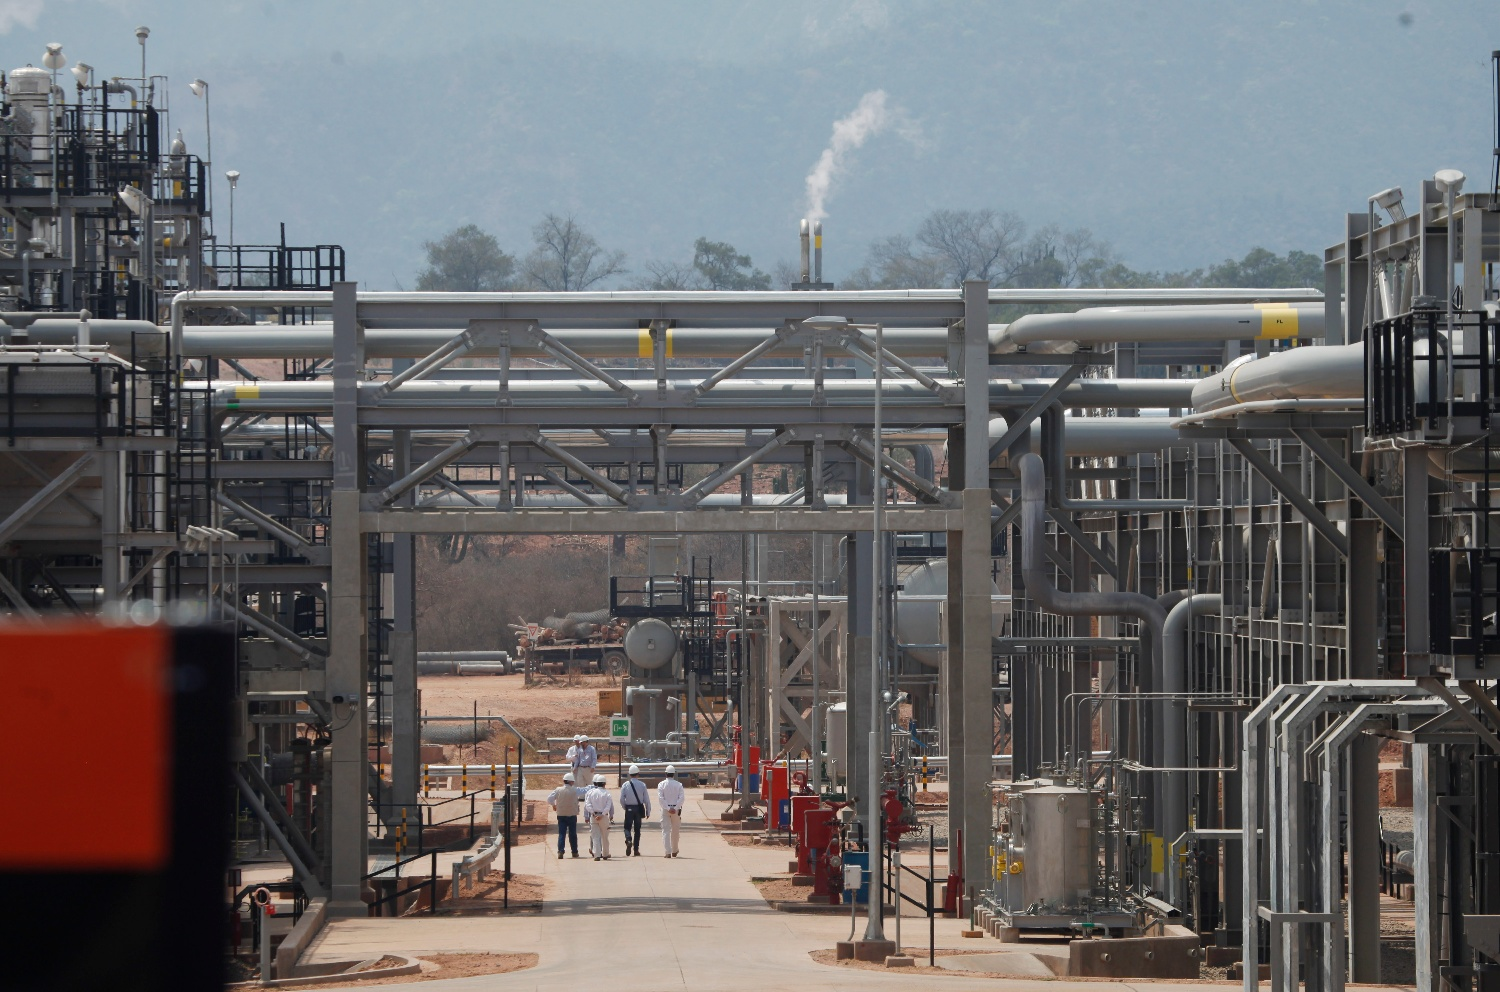 A group walks through an area at the Repsol plant before a ceremony to inaugurate the completion of a new phase at the Margarita-Huacaya gas refinery in the region of Chaco, southeast of Bolivia, Tuesday, Oct. 1, 2013.